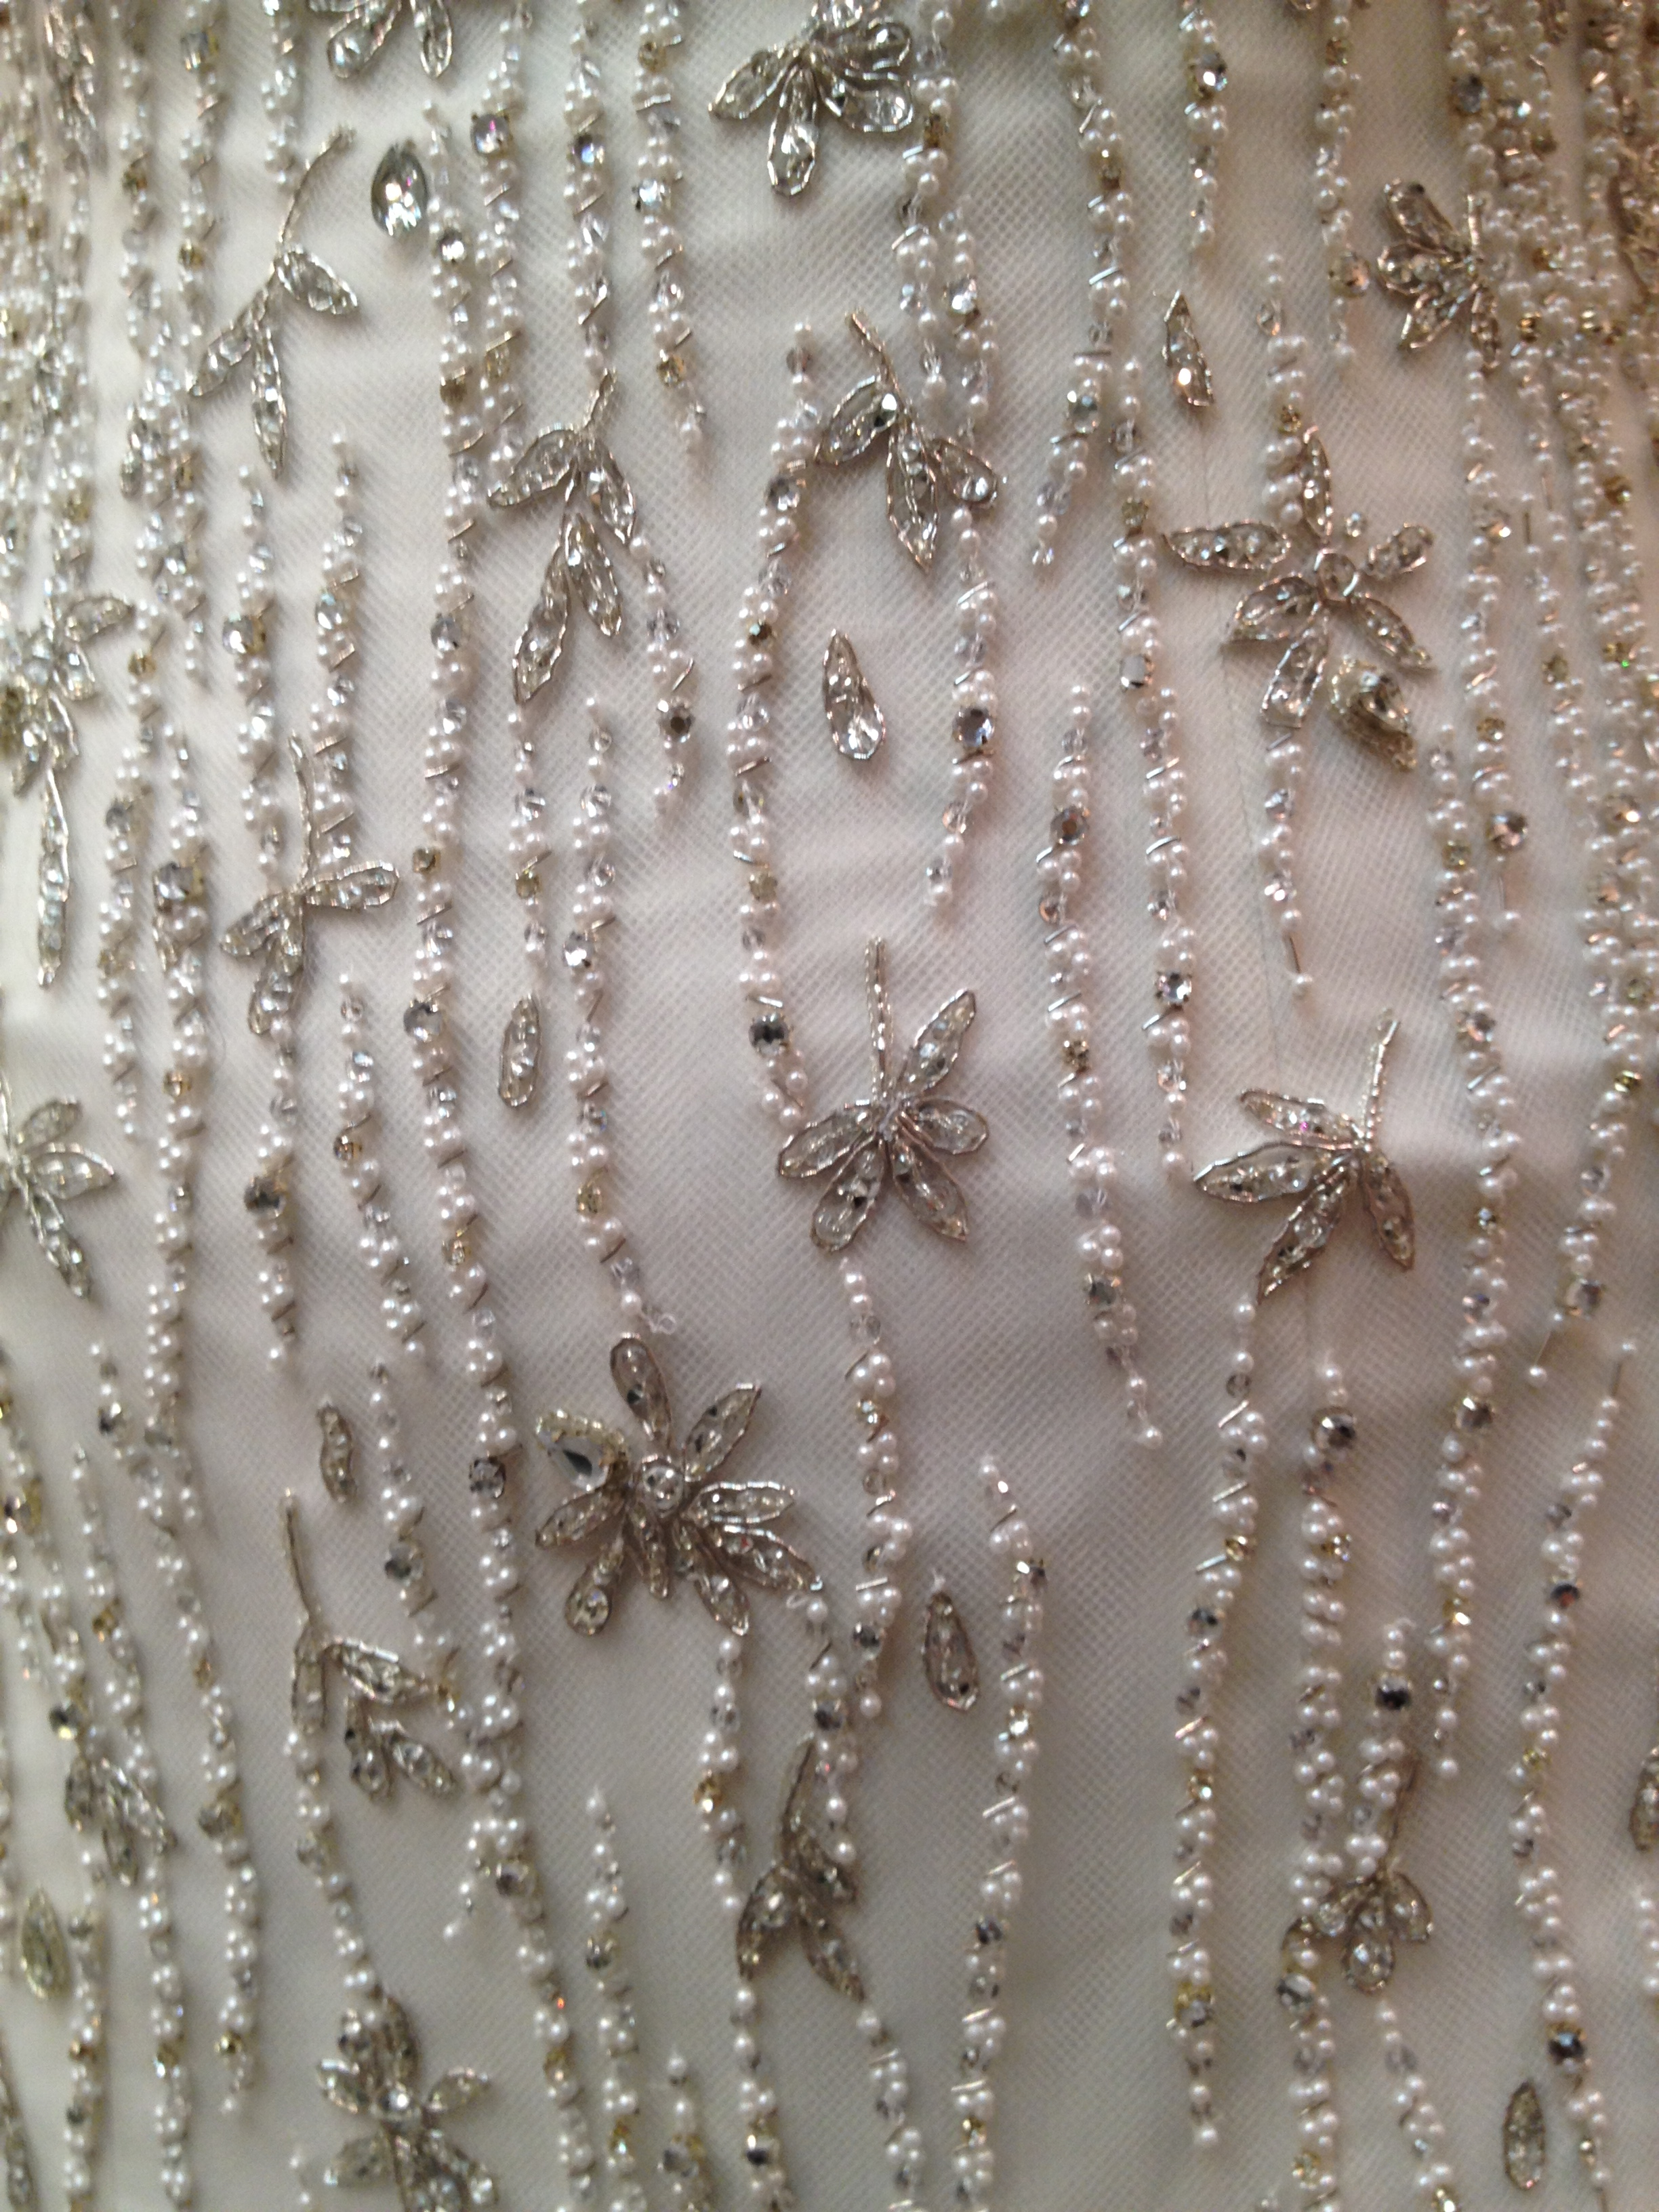 Liancarlo wedding dress - up close view of beading done by hand